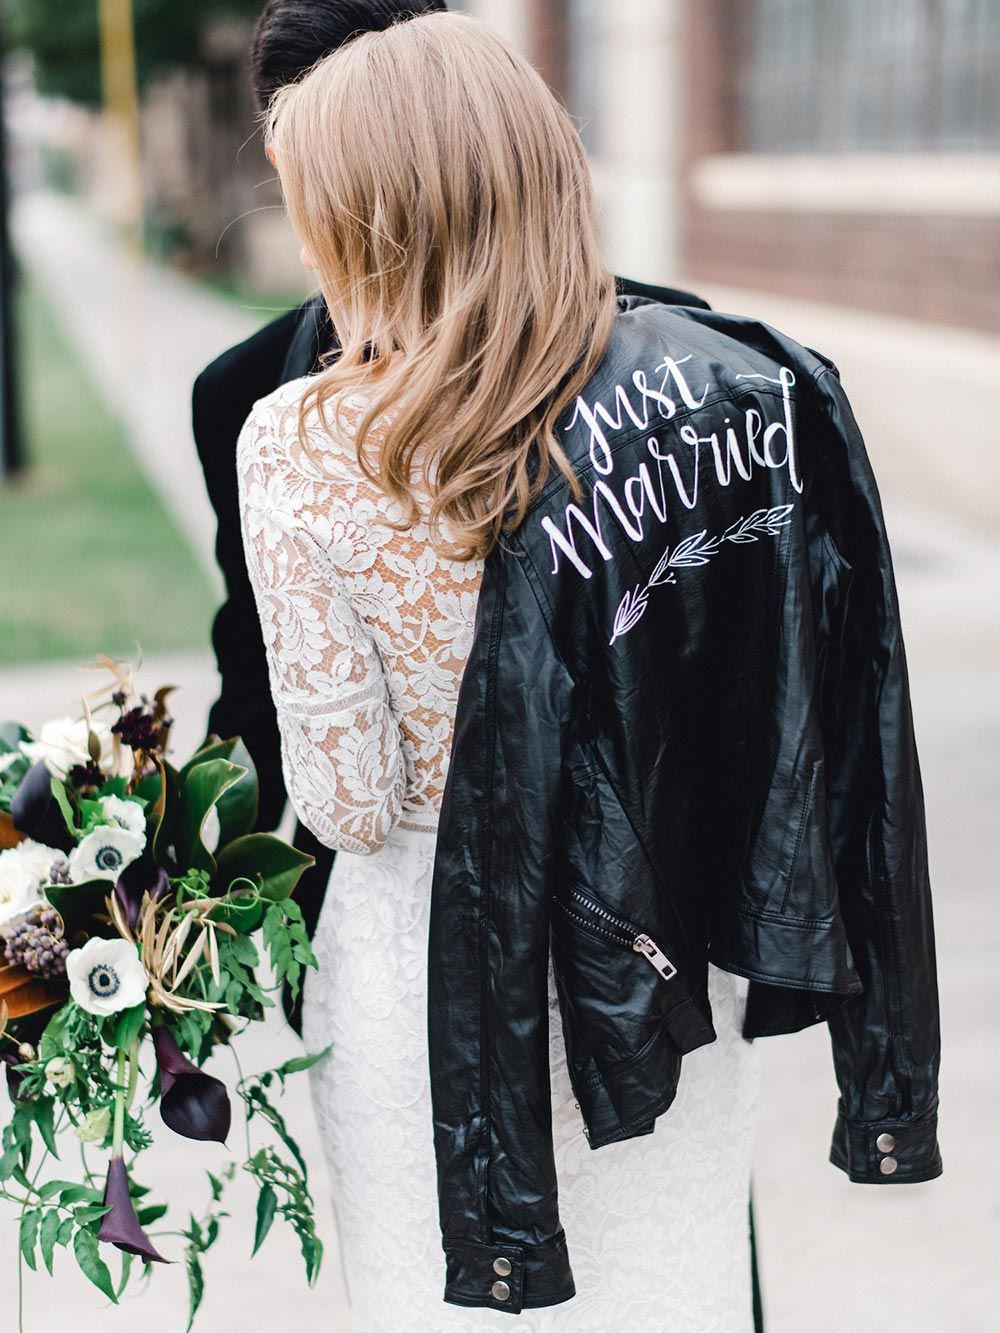 Black Tie Wedding Inspiration With A Show Stopping Nod To Adele Ruffled Winter Wedding Trends Leather Jacket Wedding Bride [ 1333 x 1000 Pixel ]